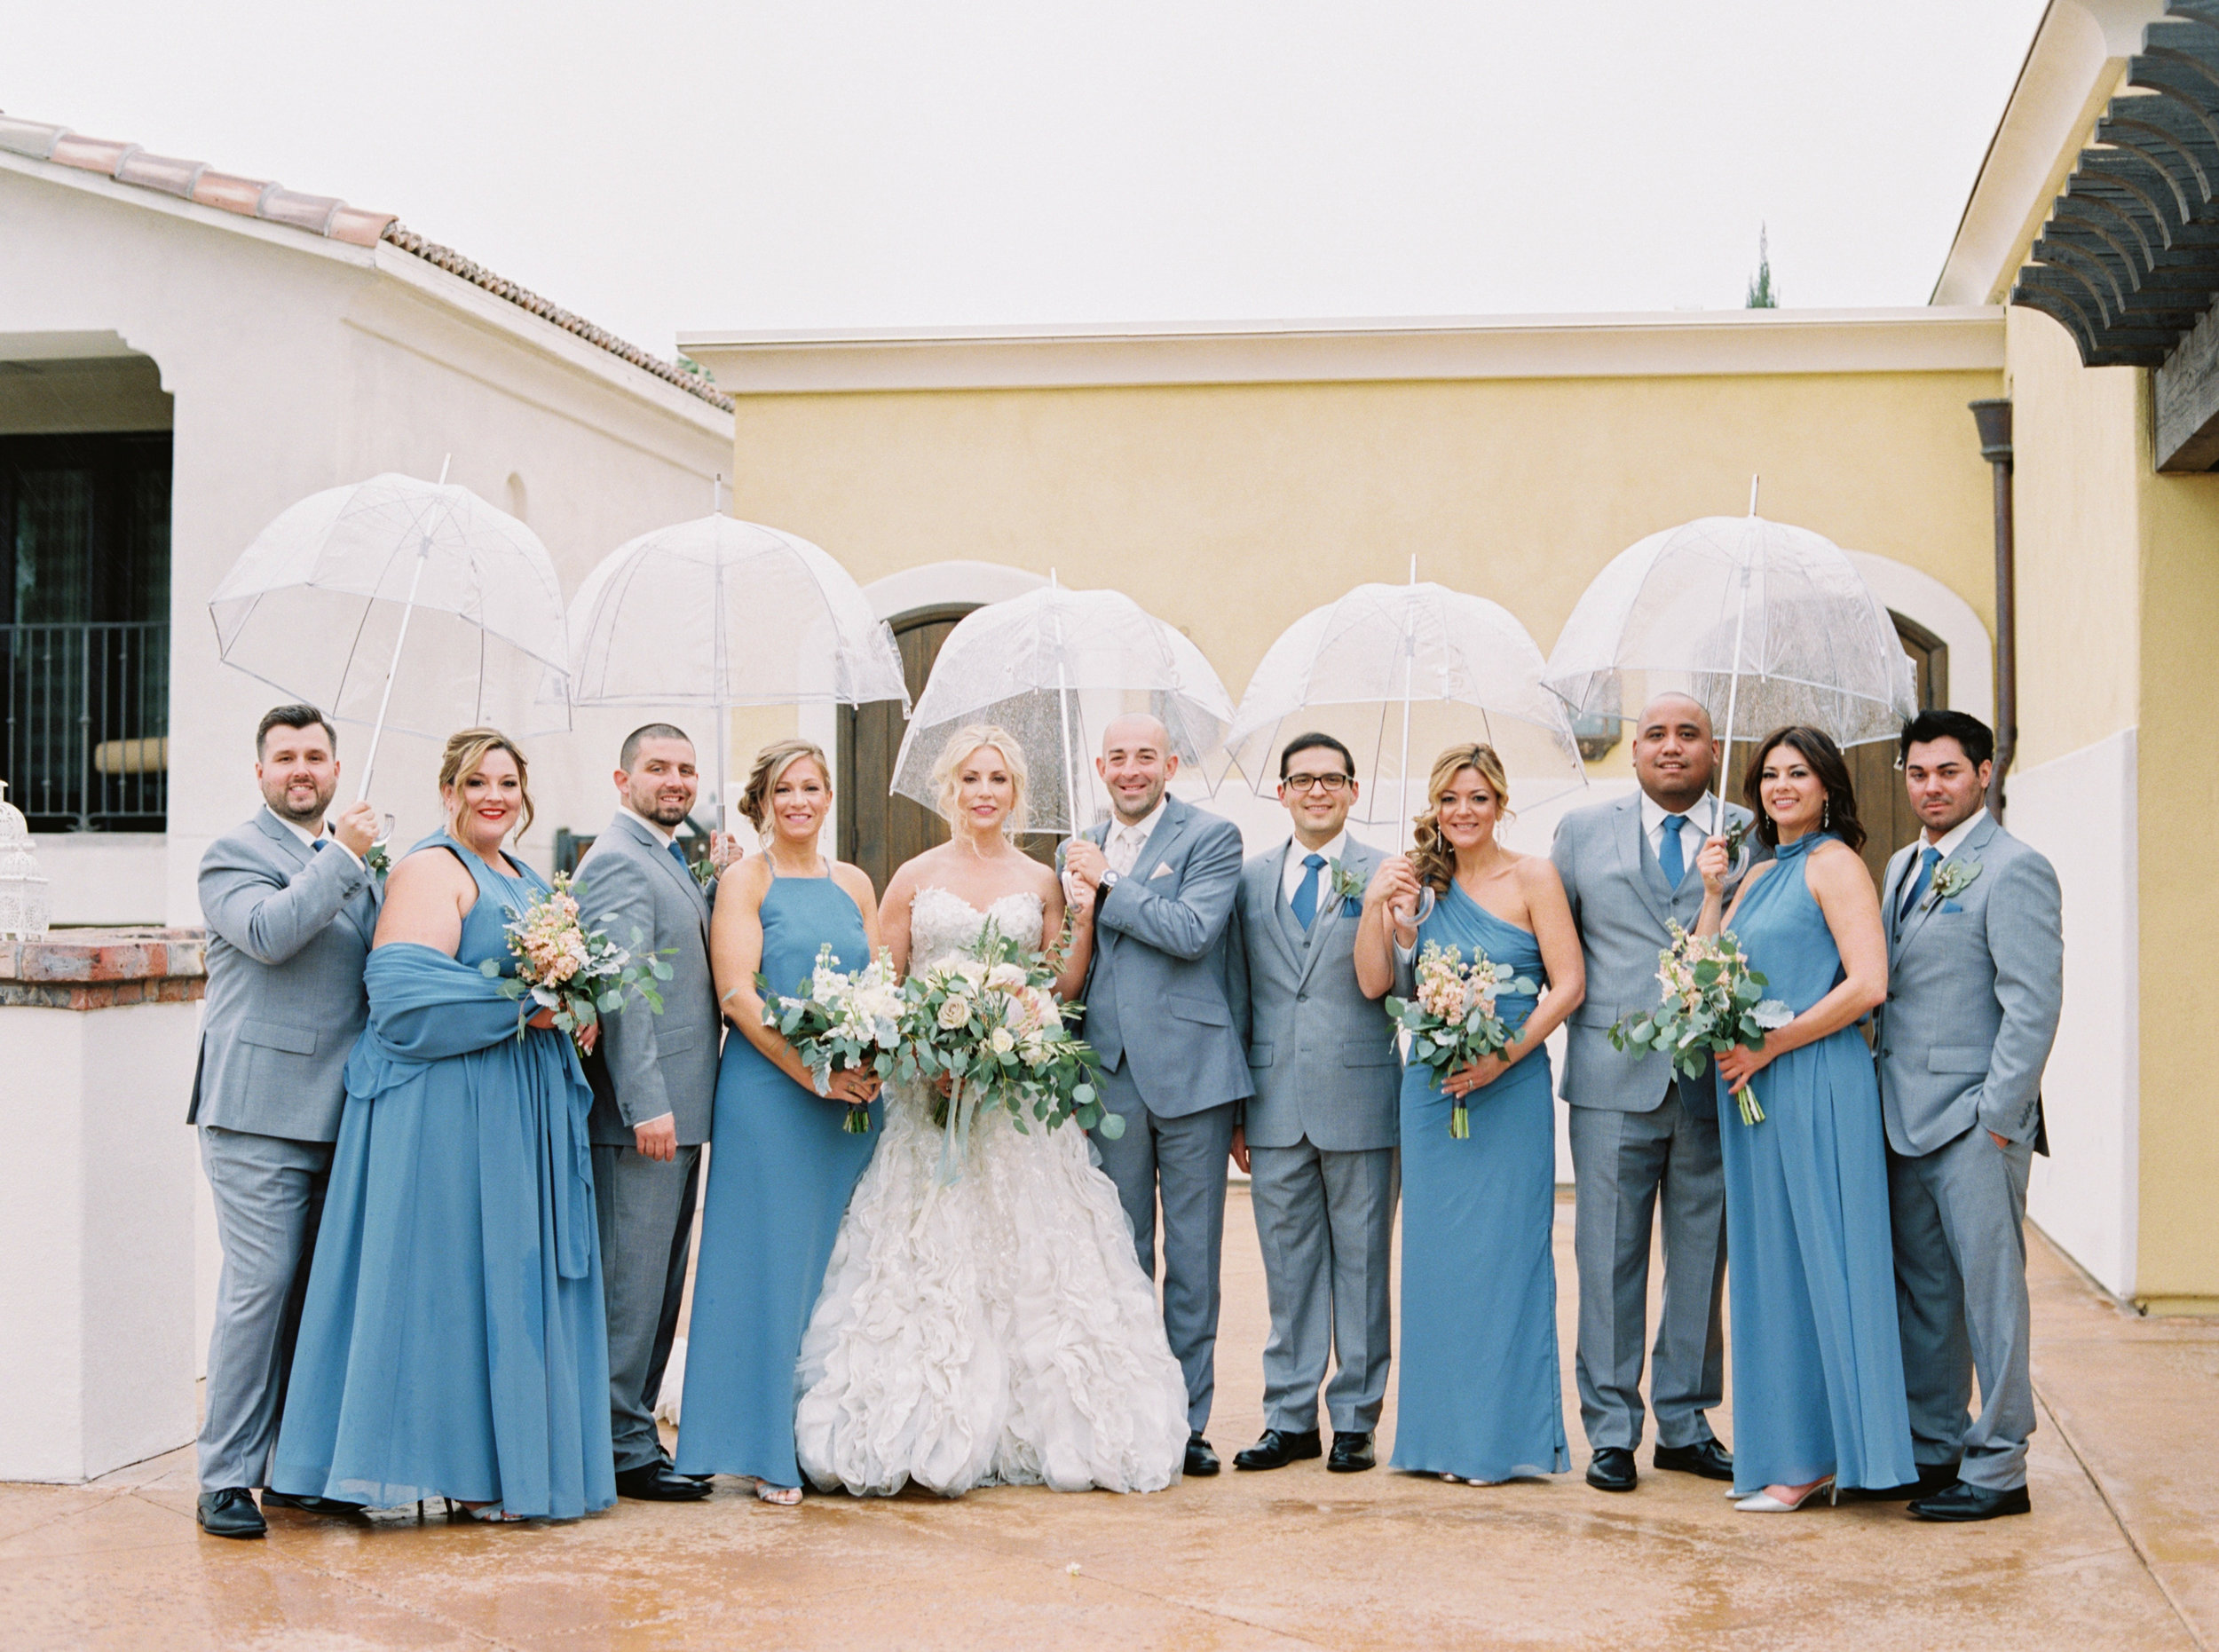 22 wedding party bridesmaid groomsman custom grey suit blue bridesmaid dress clear umbrella rain on wedding day rain during wedding pictures cloudy wedding day Life Design Events photos by Melissa Jill Photography.jpg